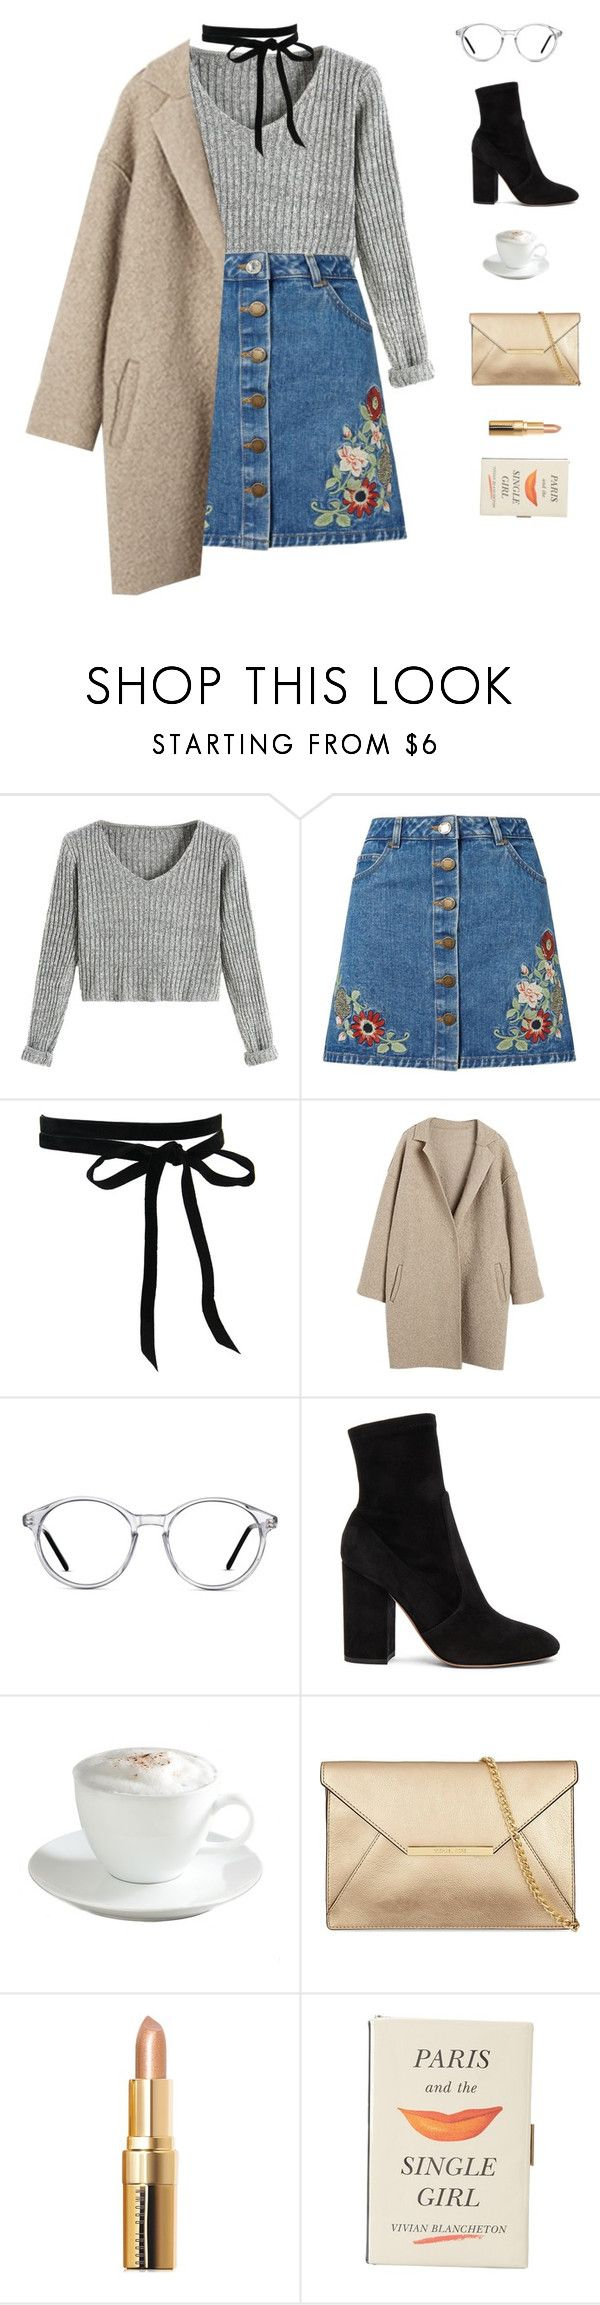 """Bold as Love // John Mayer"" by greciapaola ❤ liked on Polyvore featuring Miss Selfridge, GlassesUSA, Valentino, Sur La Table, Bobbi Brown Cosmetics and Kate Spade"